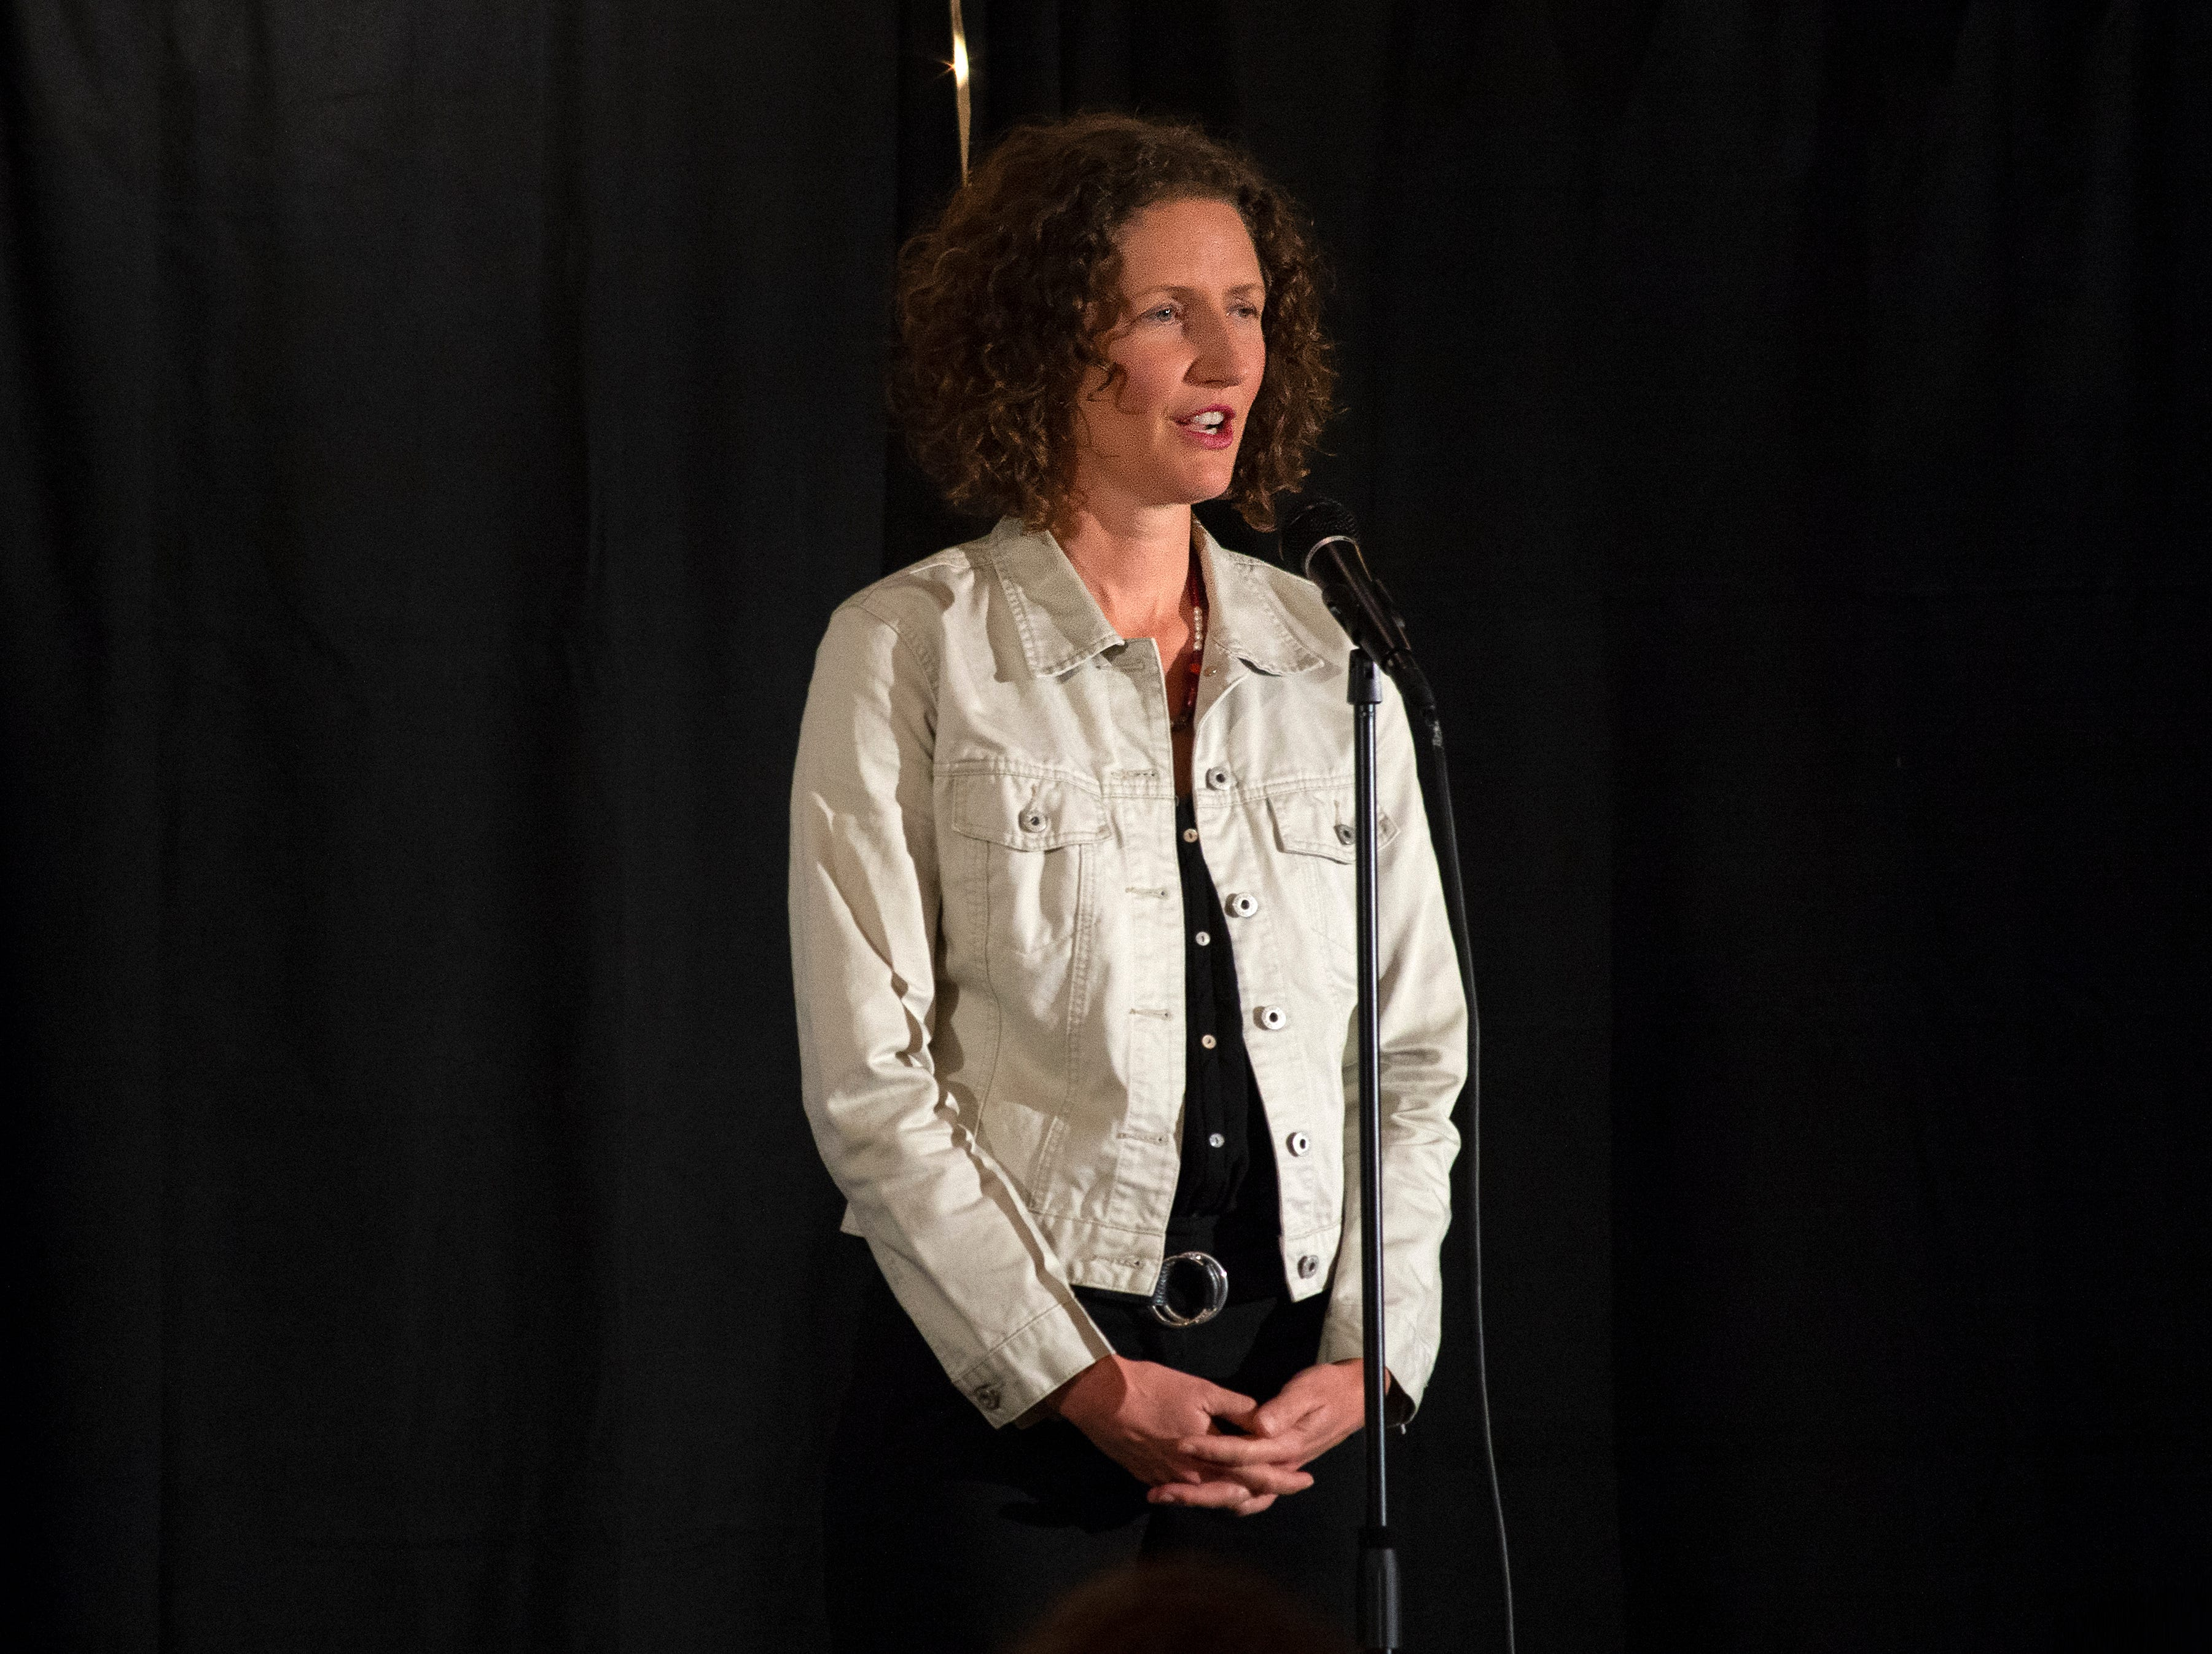 """Sushila Wood shares a story about love transcending time and distance during the Ventura Storytellers Project event at the Museum of Ventura County Agriculture Museum on Thursday. The theme of the night was """"Away We Go."""""""